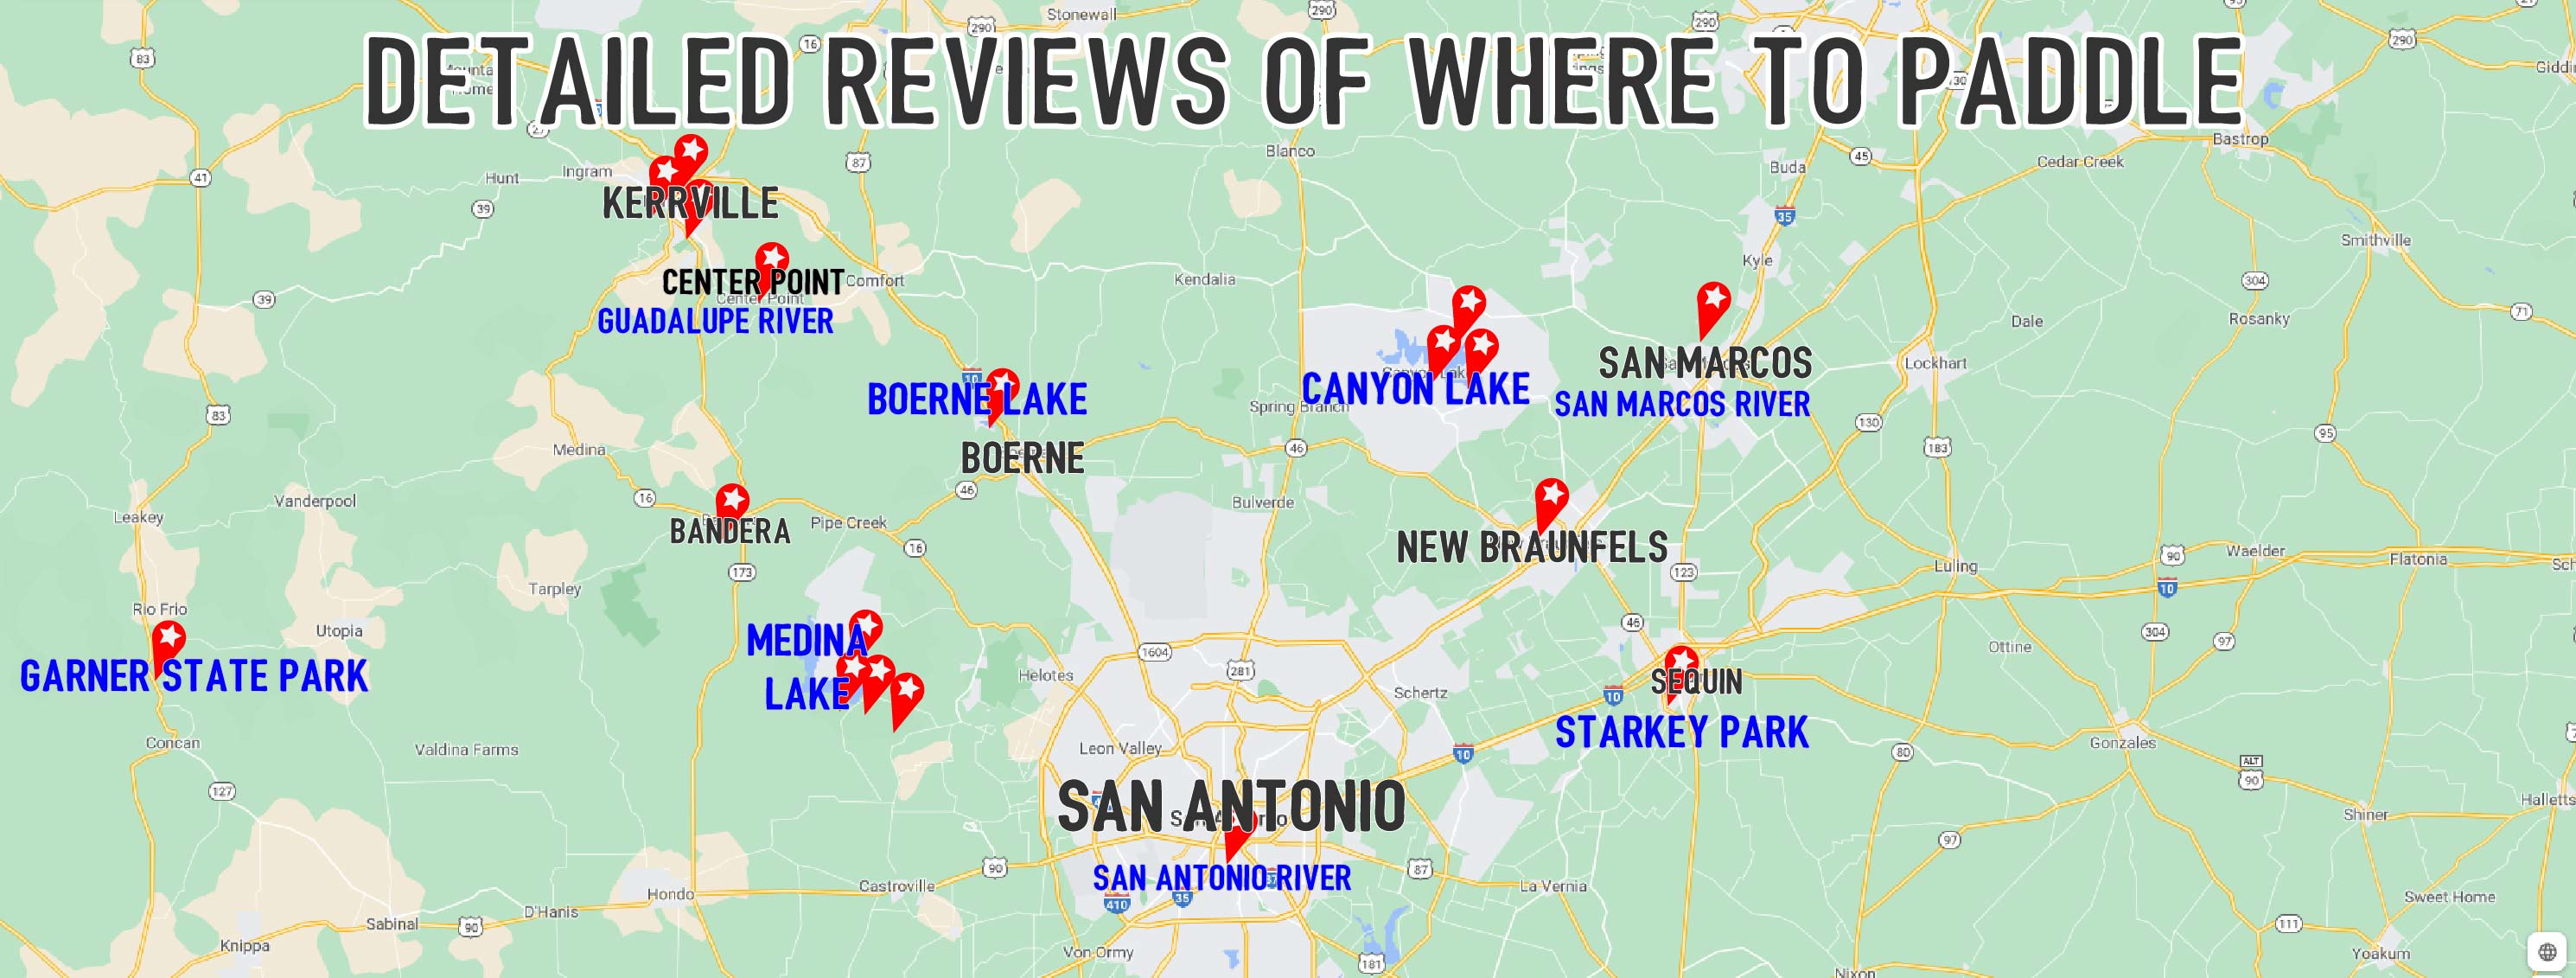 Map of places to paddle near San Antonio, Austin and Kerrville